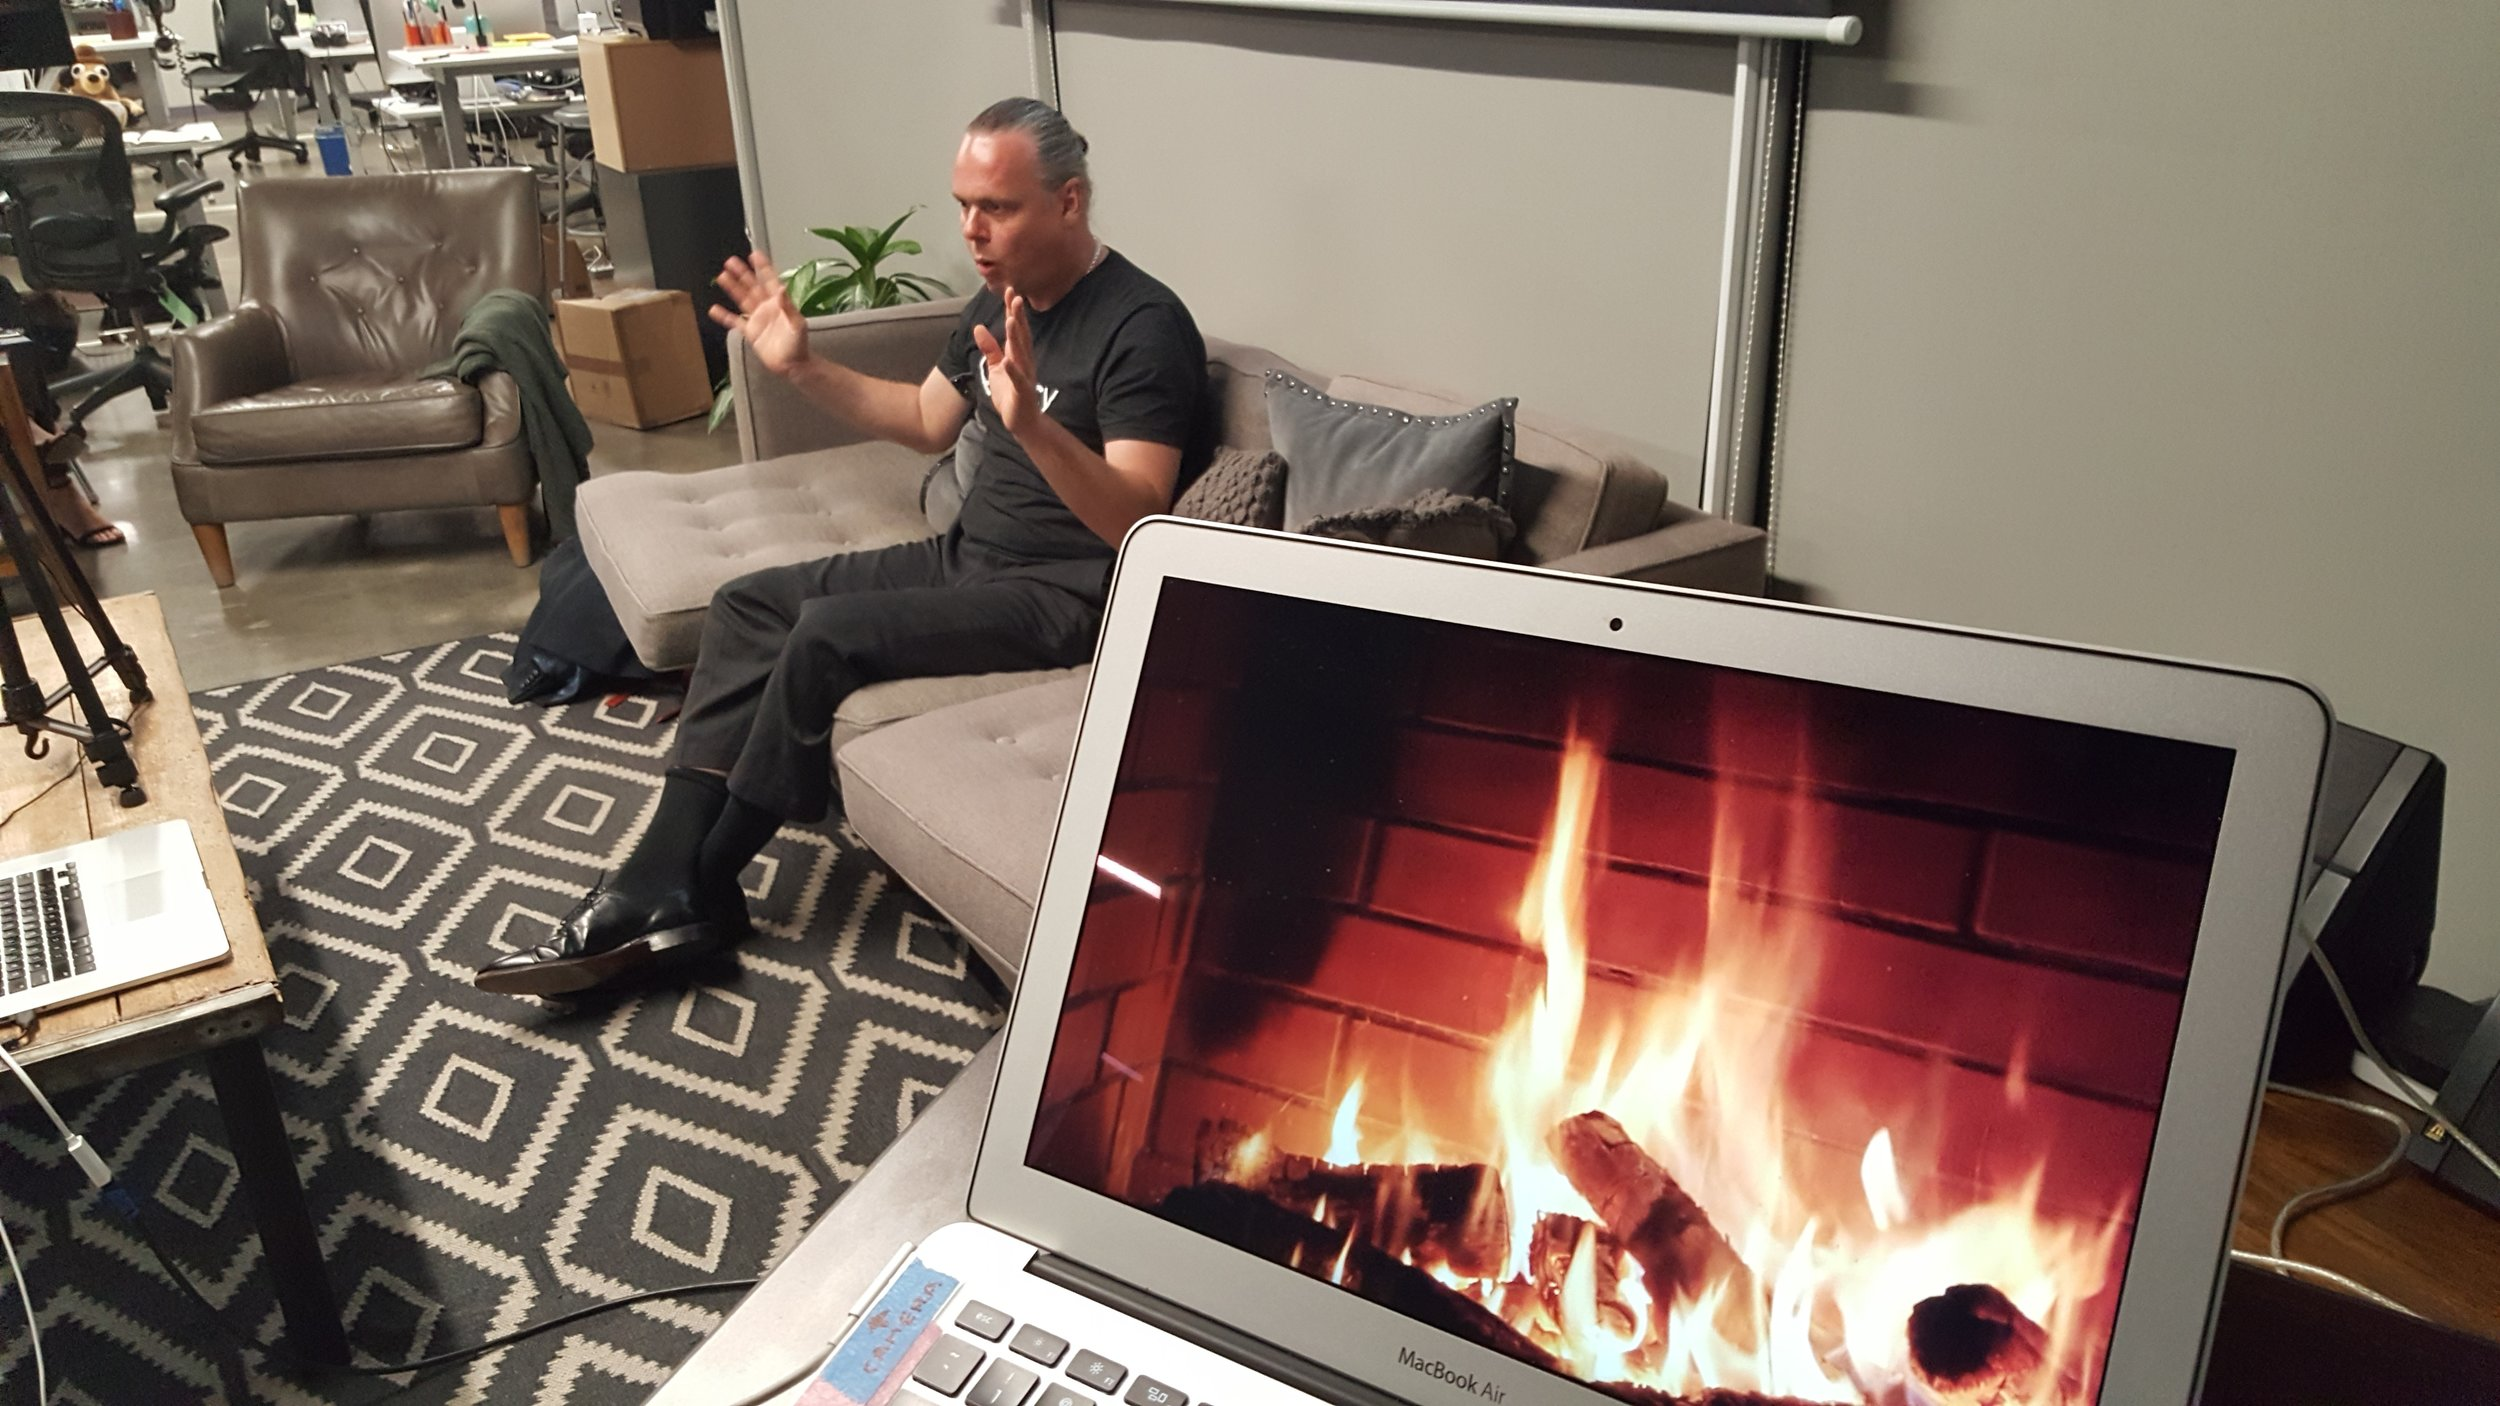 Fire side chat with Jeremy Hallett